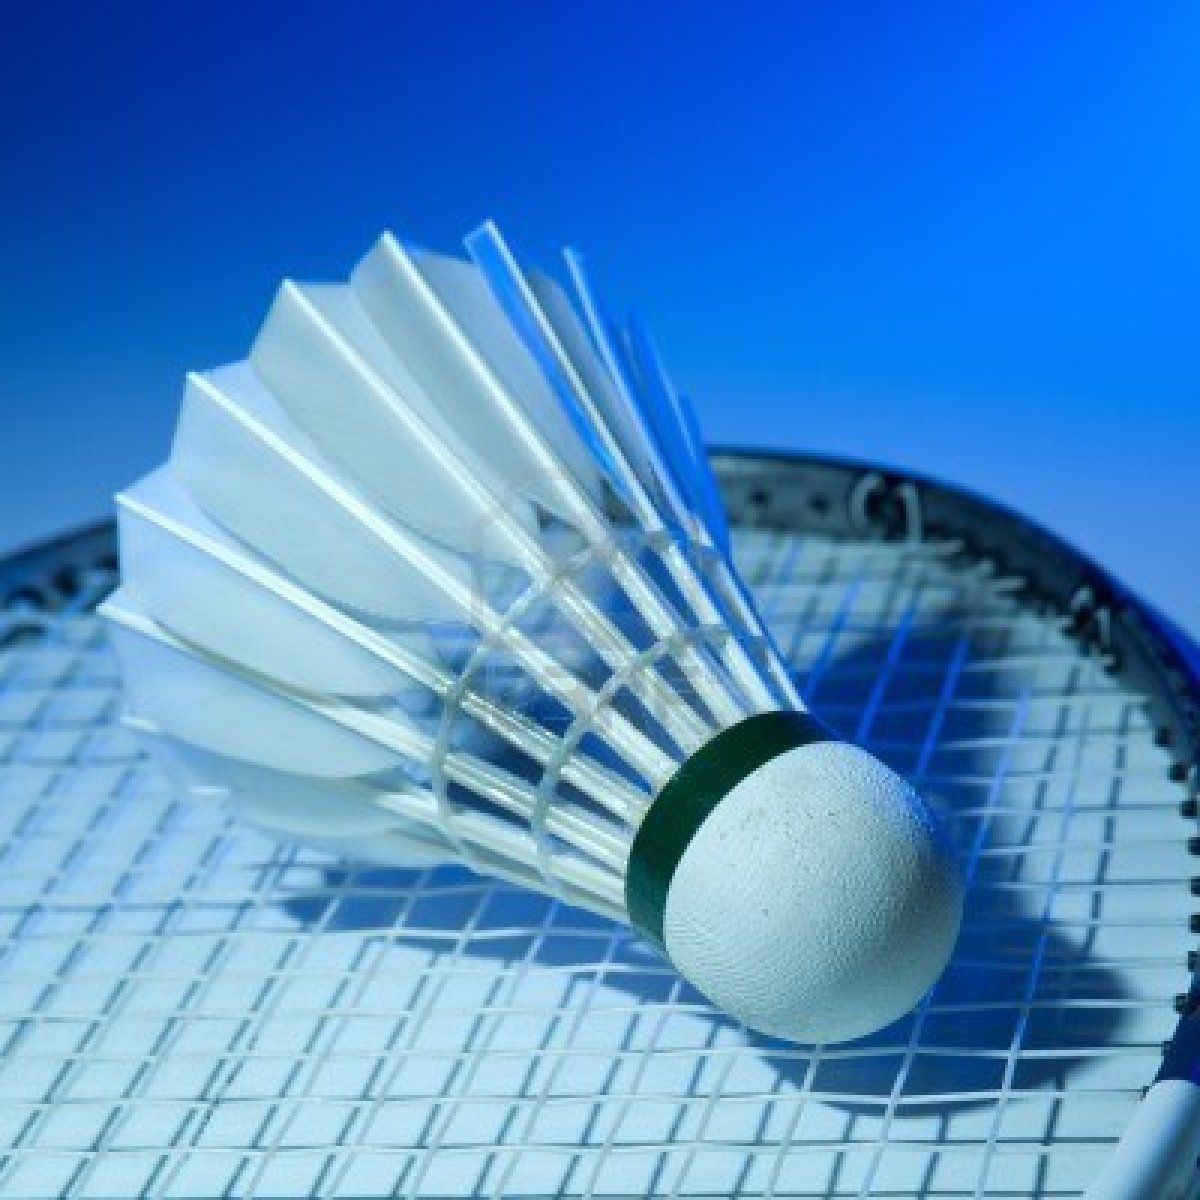 Play Badminton You Said You Know How To Play It Jeux Raquettes Fitness